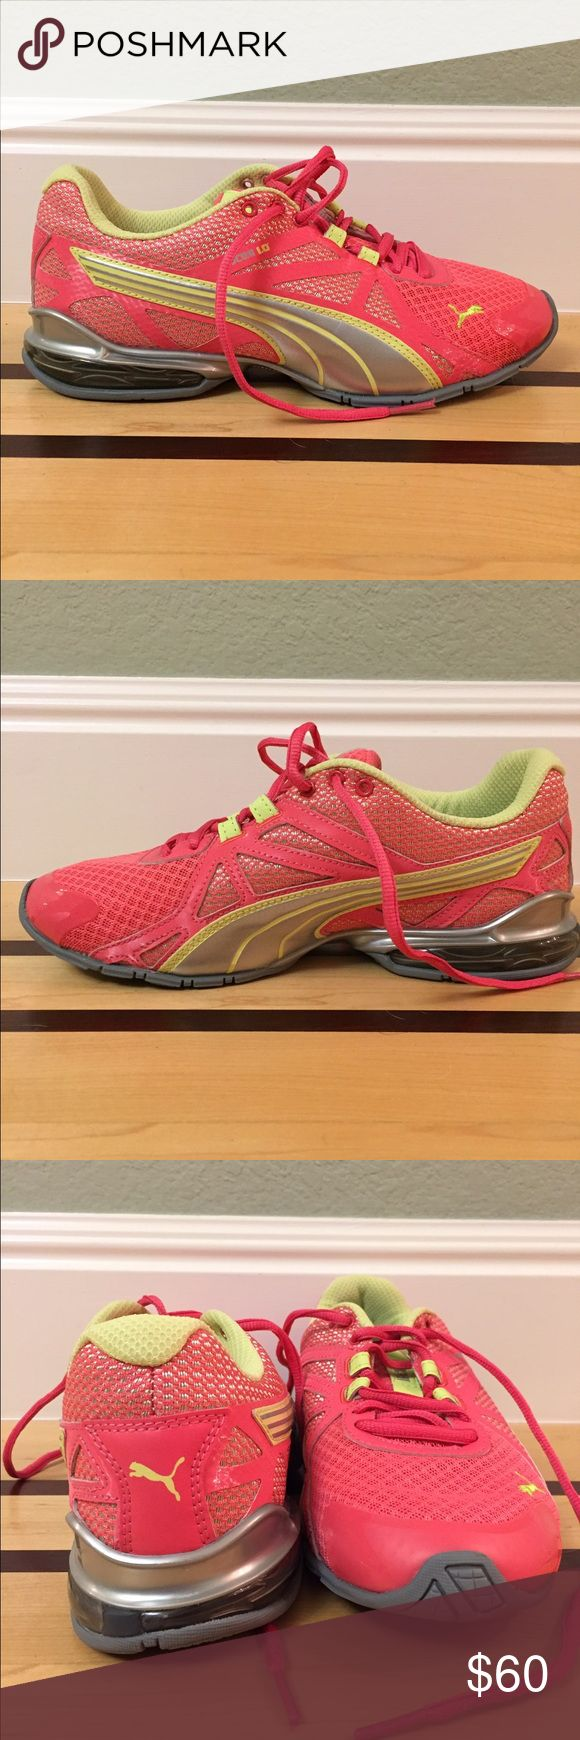 Pink Puma Running Shoes Style IOCELL 1.0. Light pink and light green. Only worn once Puma Shoes Athletic Shoes